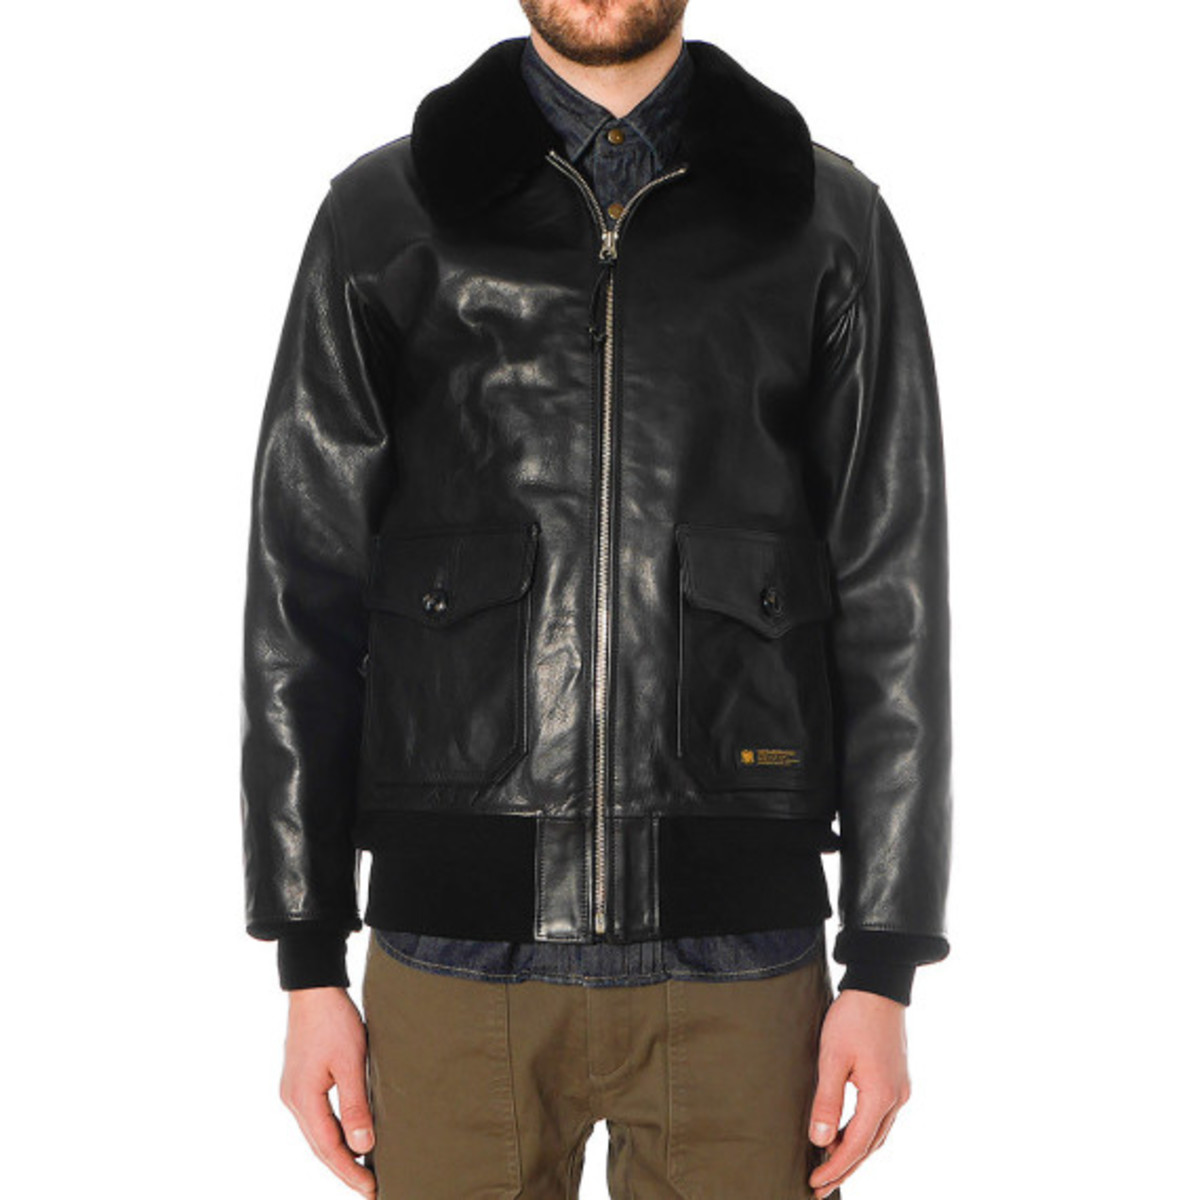 neighborhood-g-1-flight-jacket-03